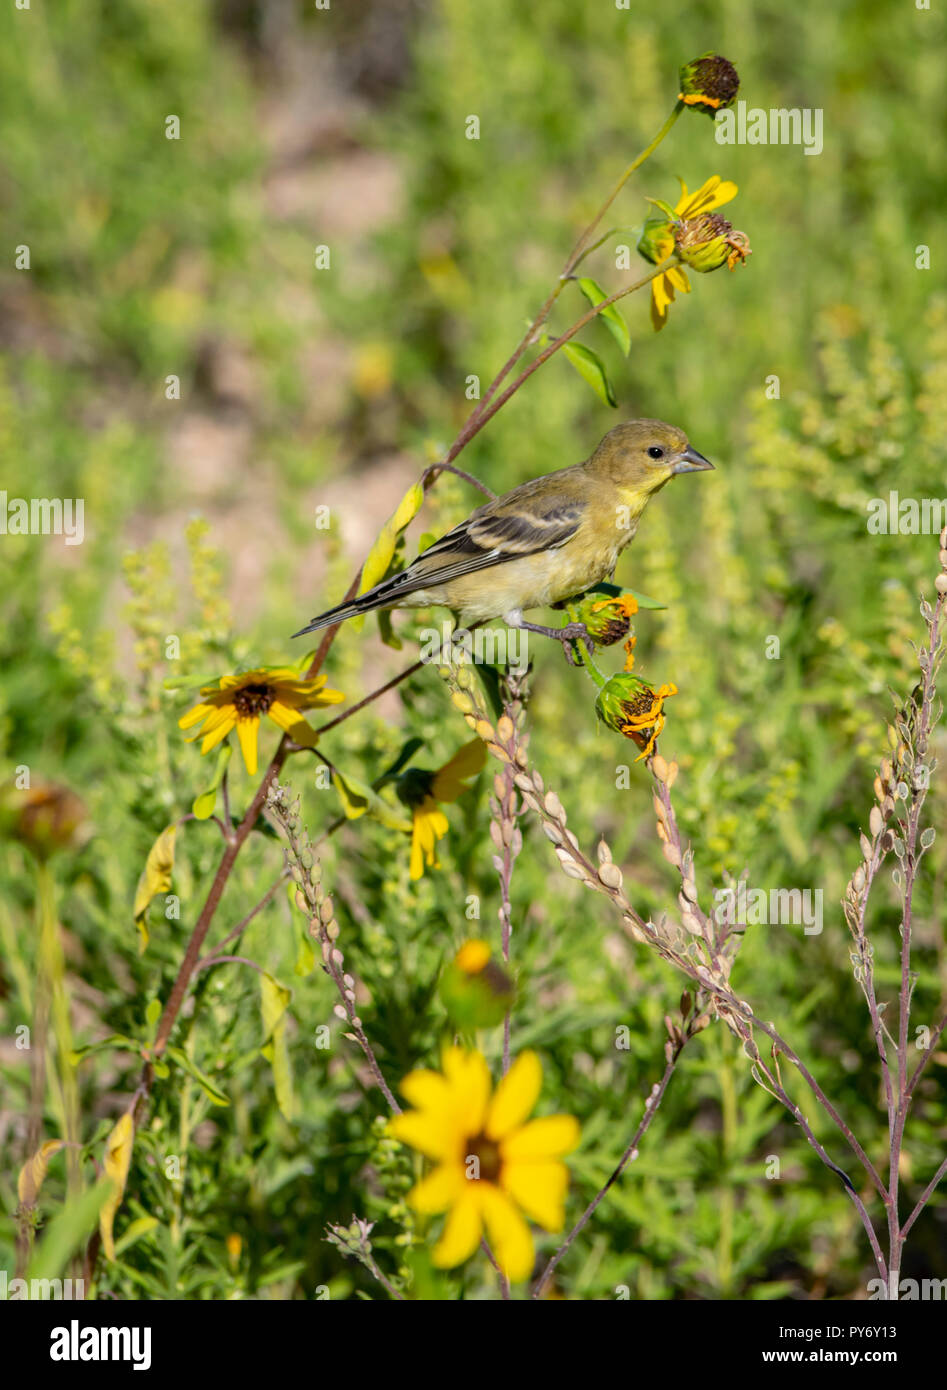 Female Lesser Goldfinch (Spinus psaltria) searching for seeds on prairie sunflowers, Castle Rock Colorado US. Photo taken in August. - Stock Image